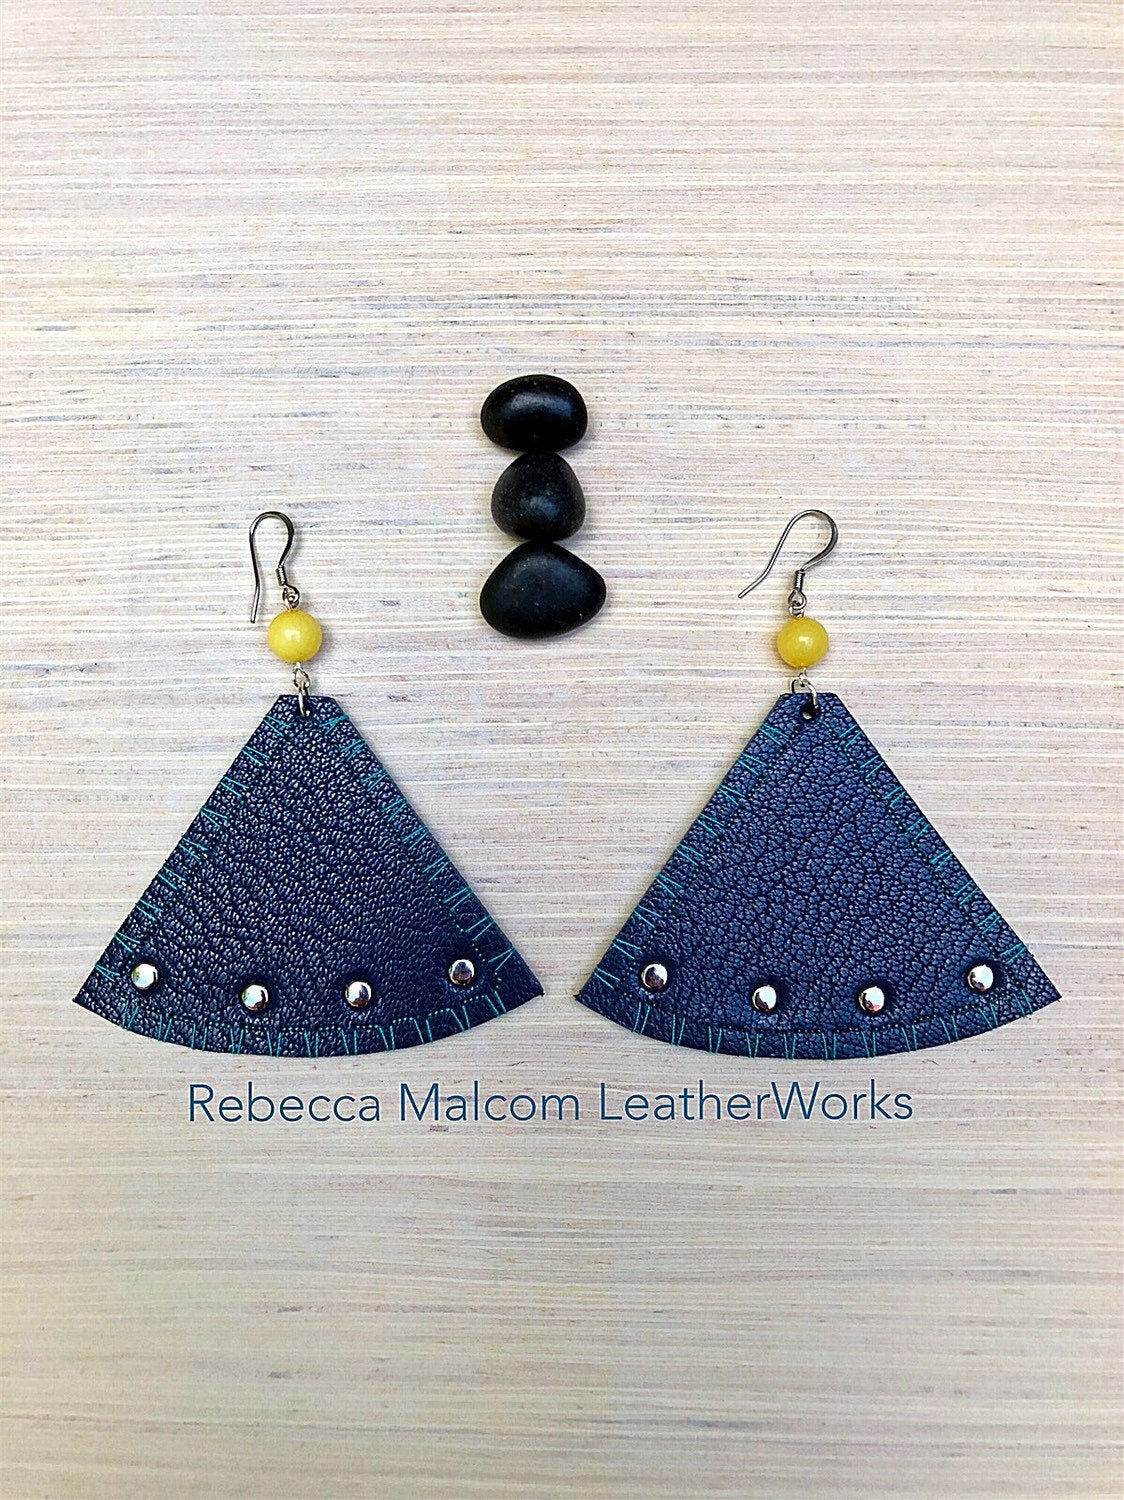 Womens Leather Earrings, Leather Earrings, Statement Earrings, Unique Earrings, Designer Earrings, Womens Earrings, Modern Leather Earrings